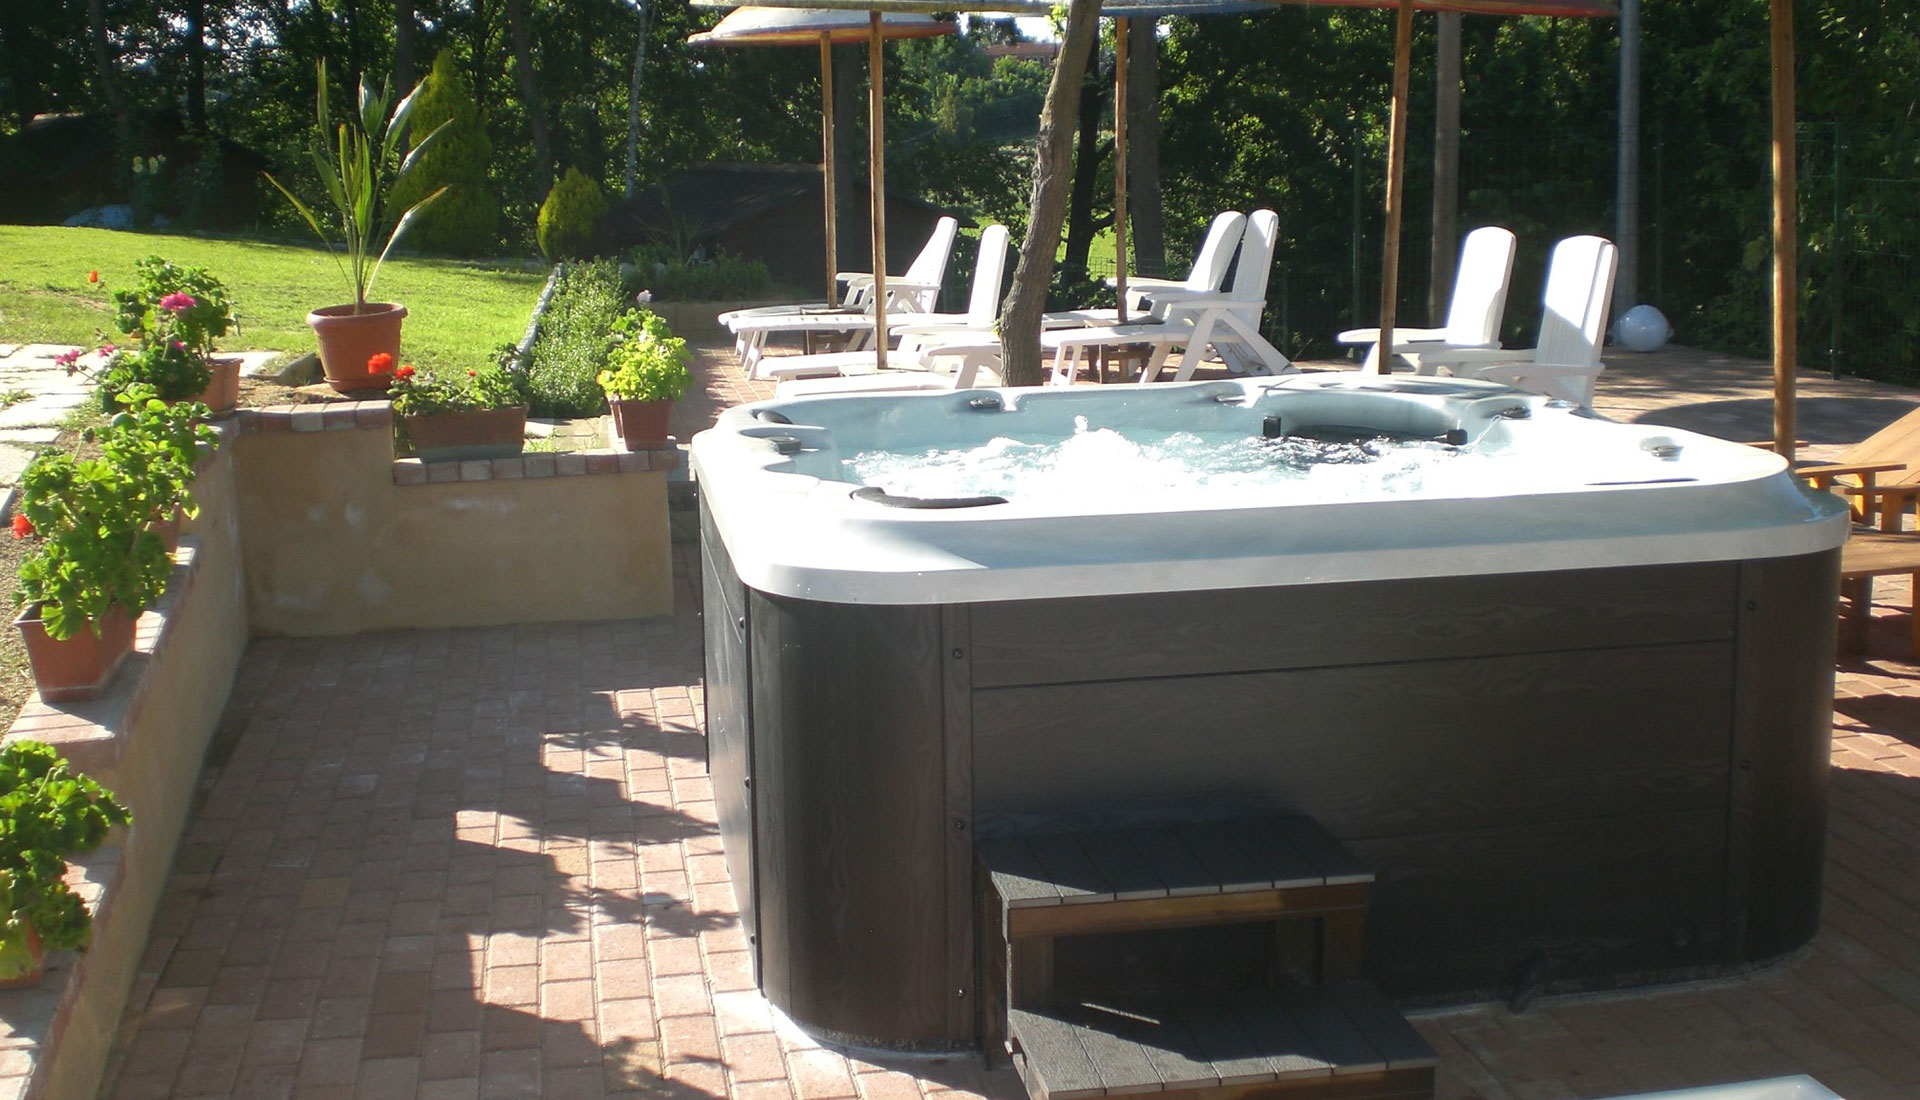 Enjoy relaxing time in an outdoor whirlpool